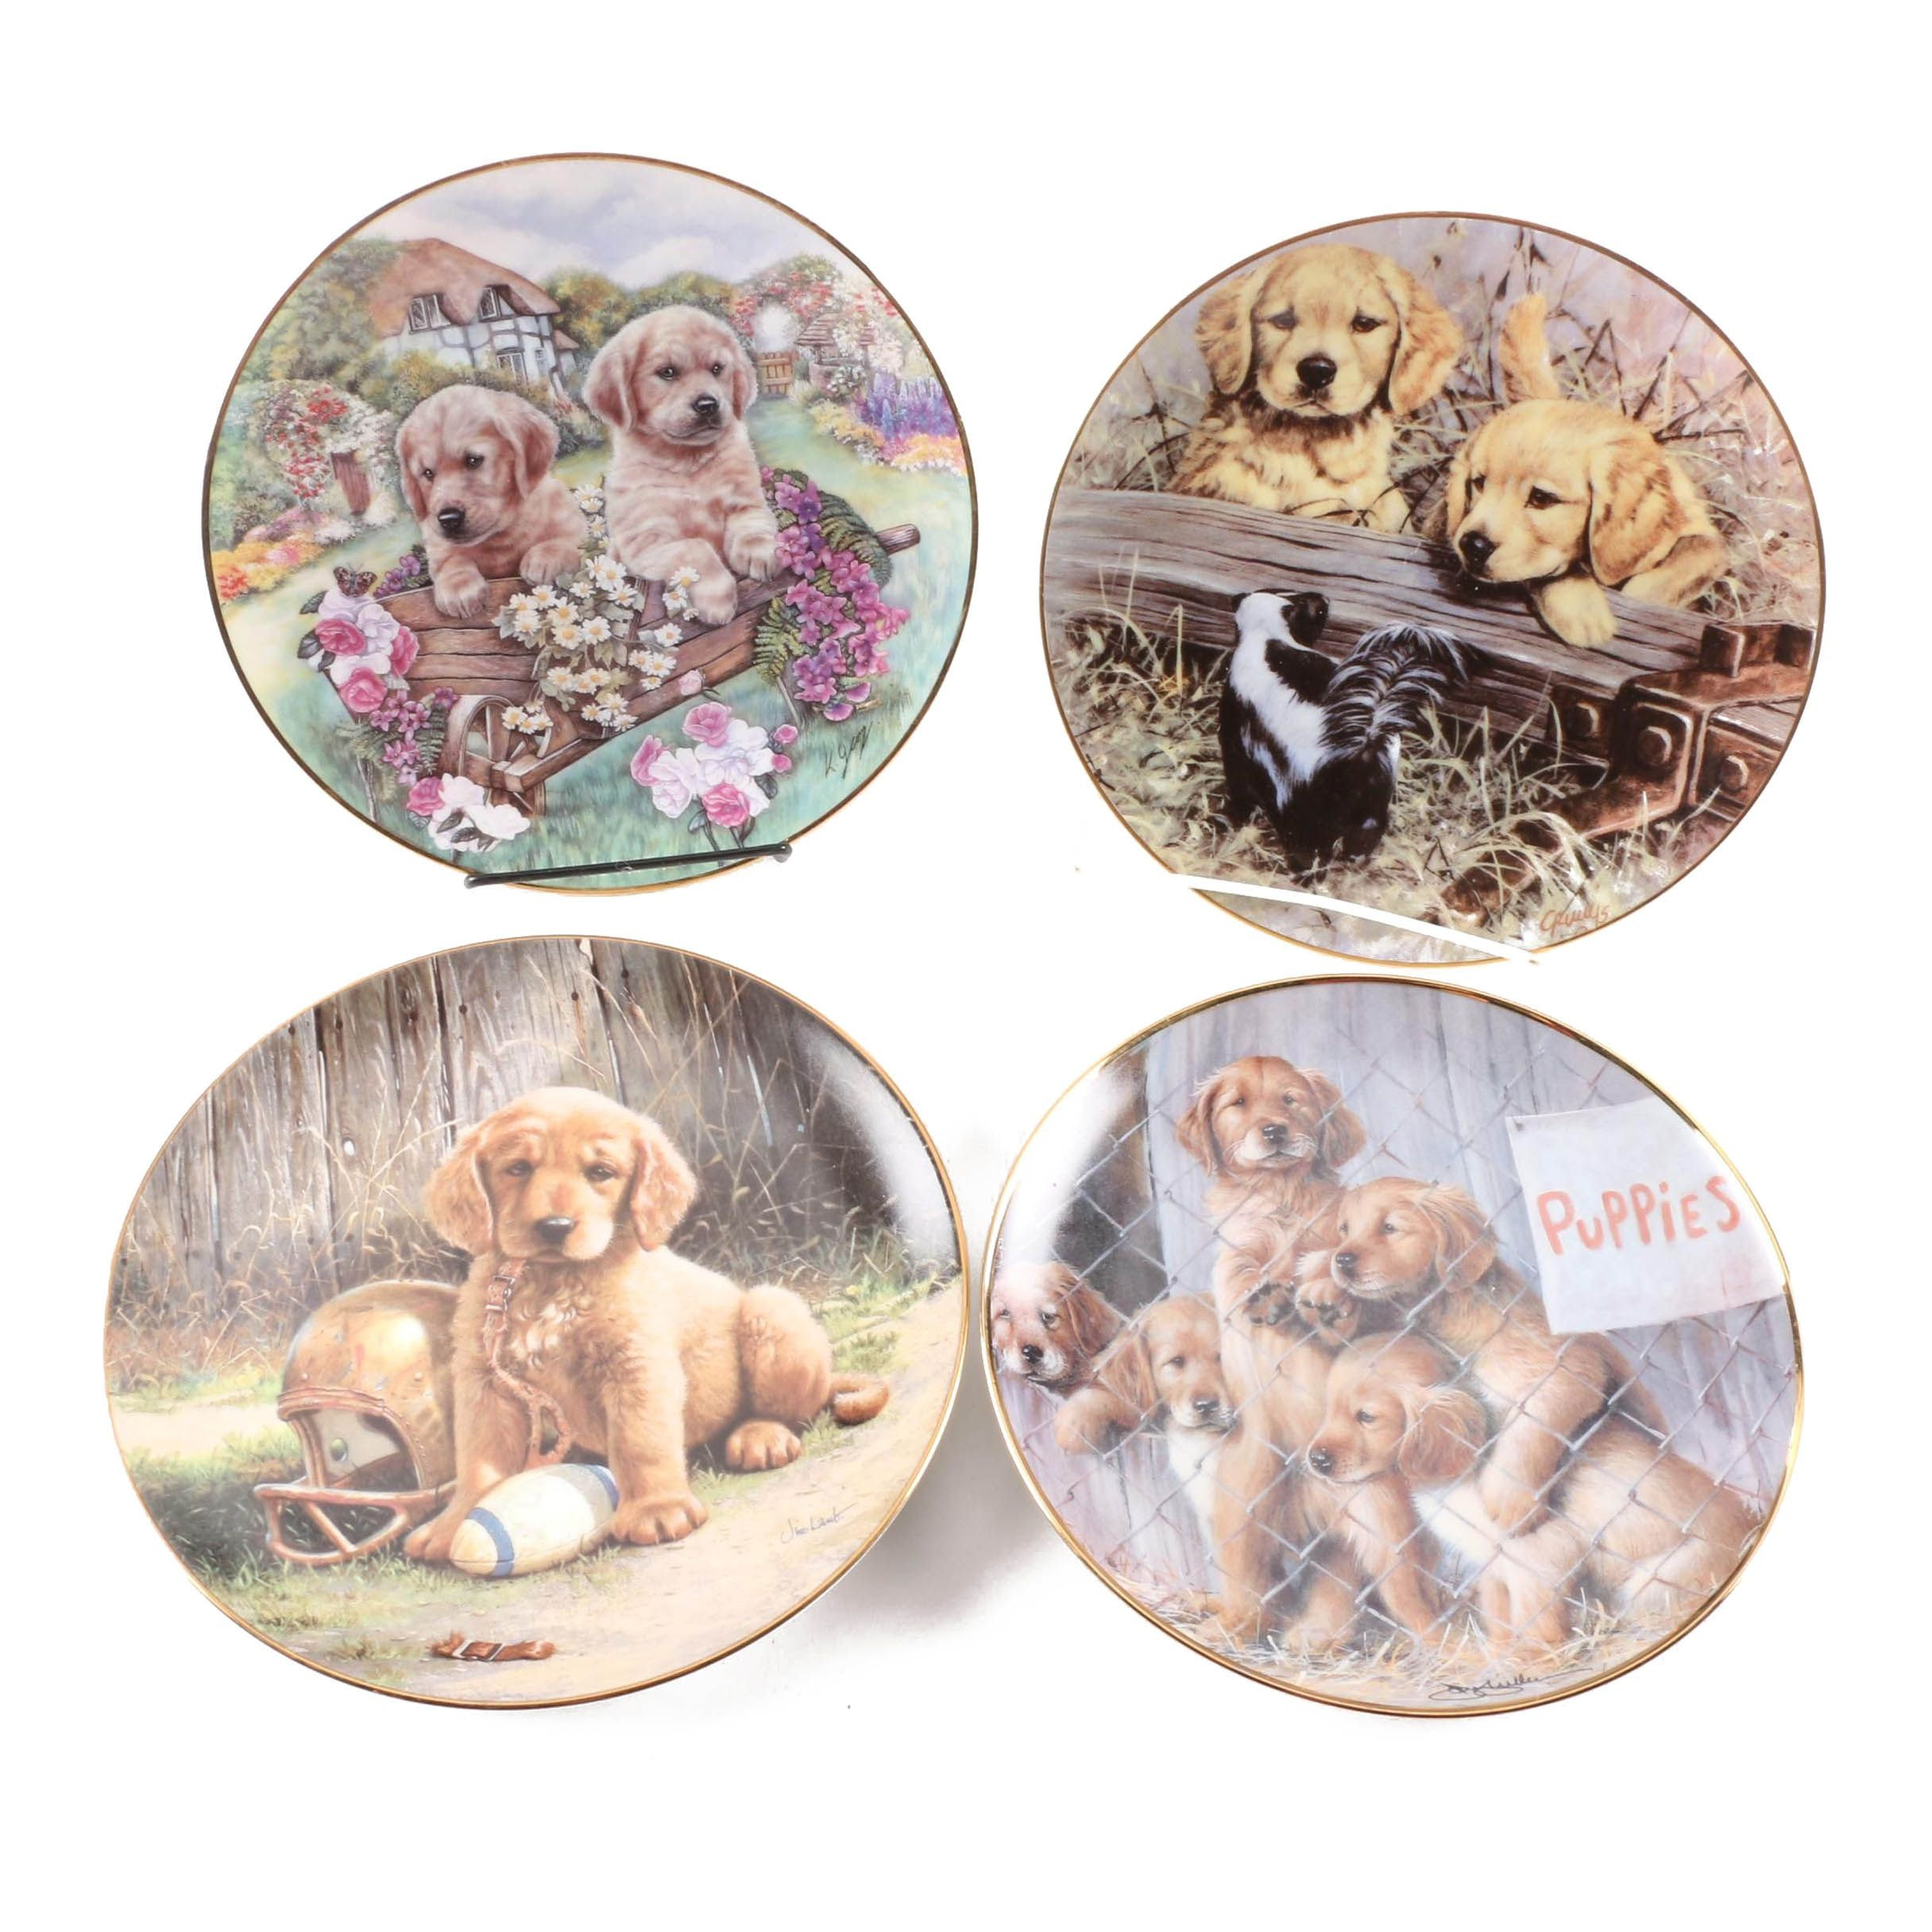 Golden Retriever Puppy Porcelain Collector Plates